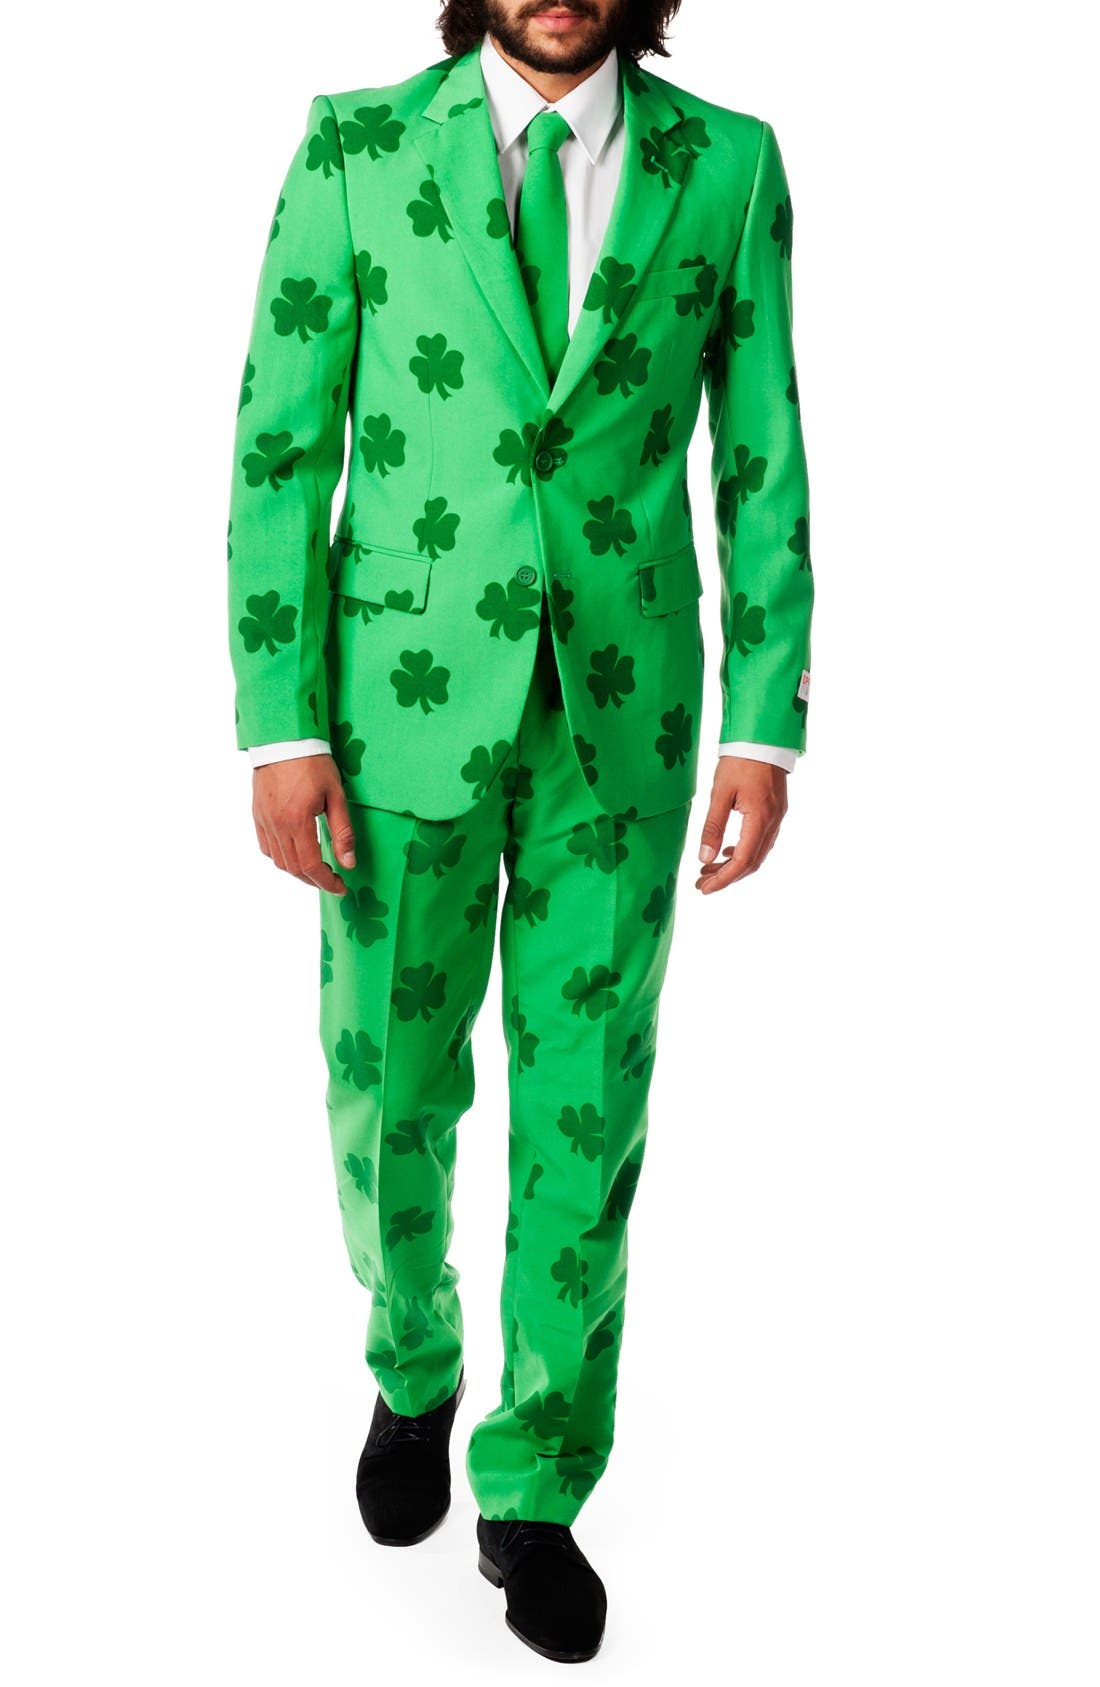 Main Image - OppoSuits 'Patrick' Trim Fit Two-Piece Suit with Tie